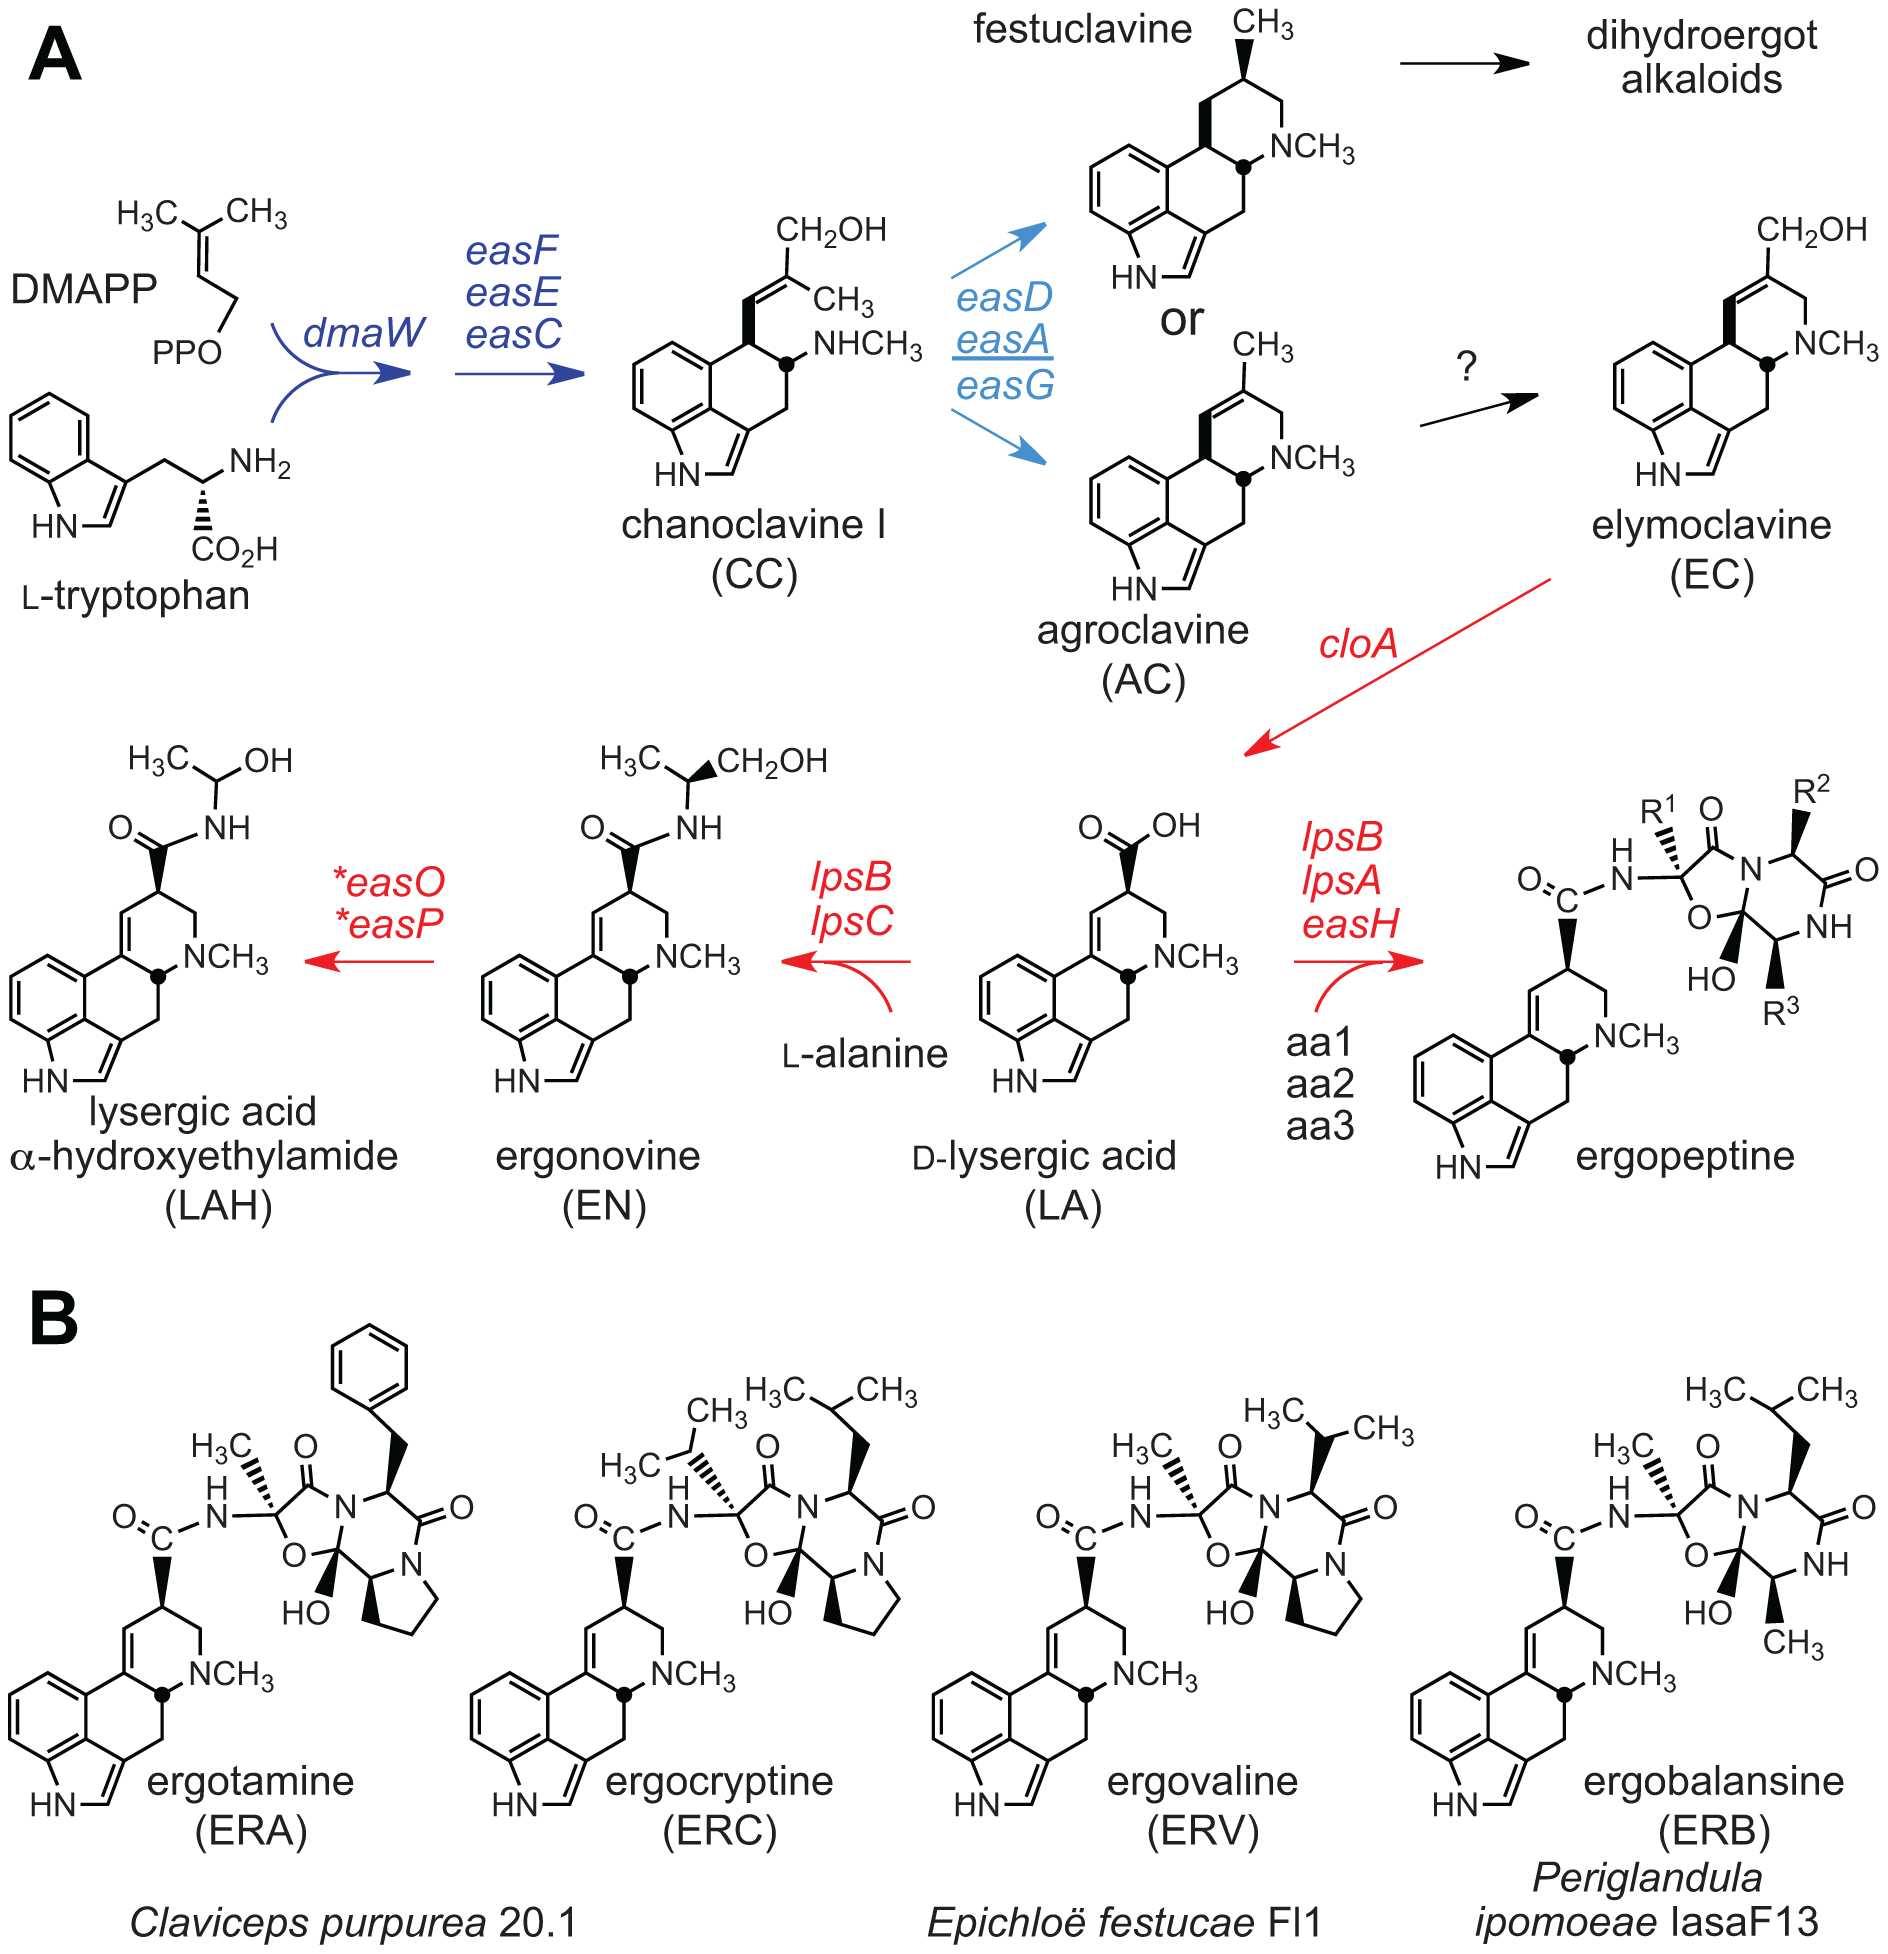 Ergot alkaloids and summary of biosynthesis pathway.